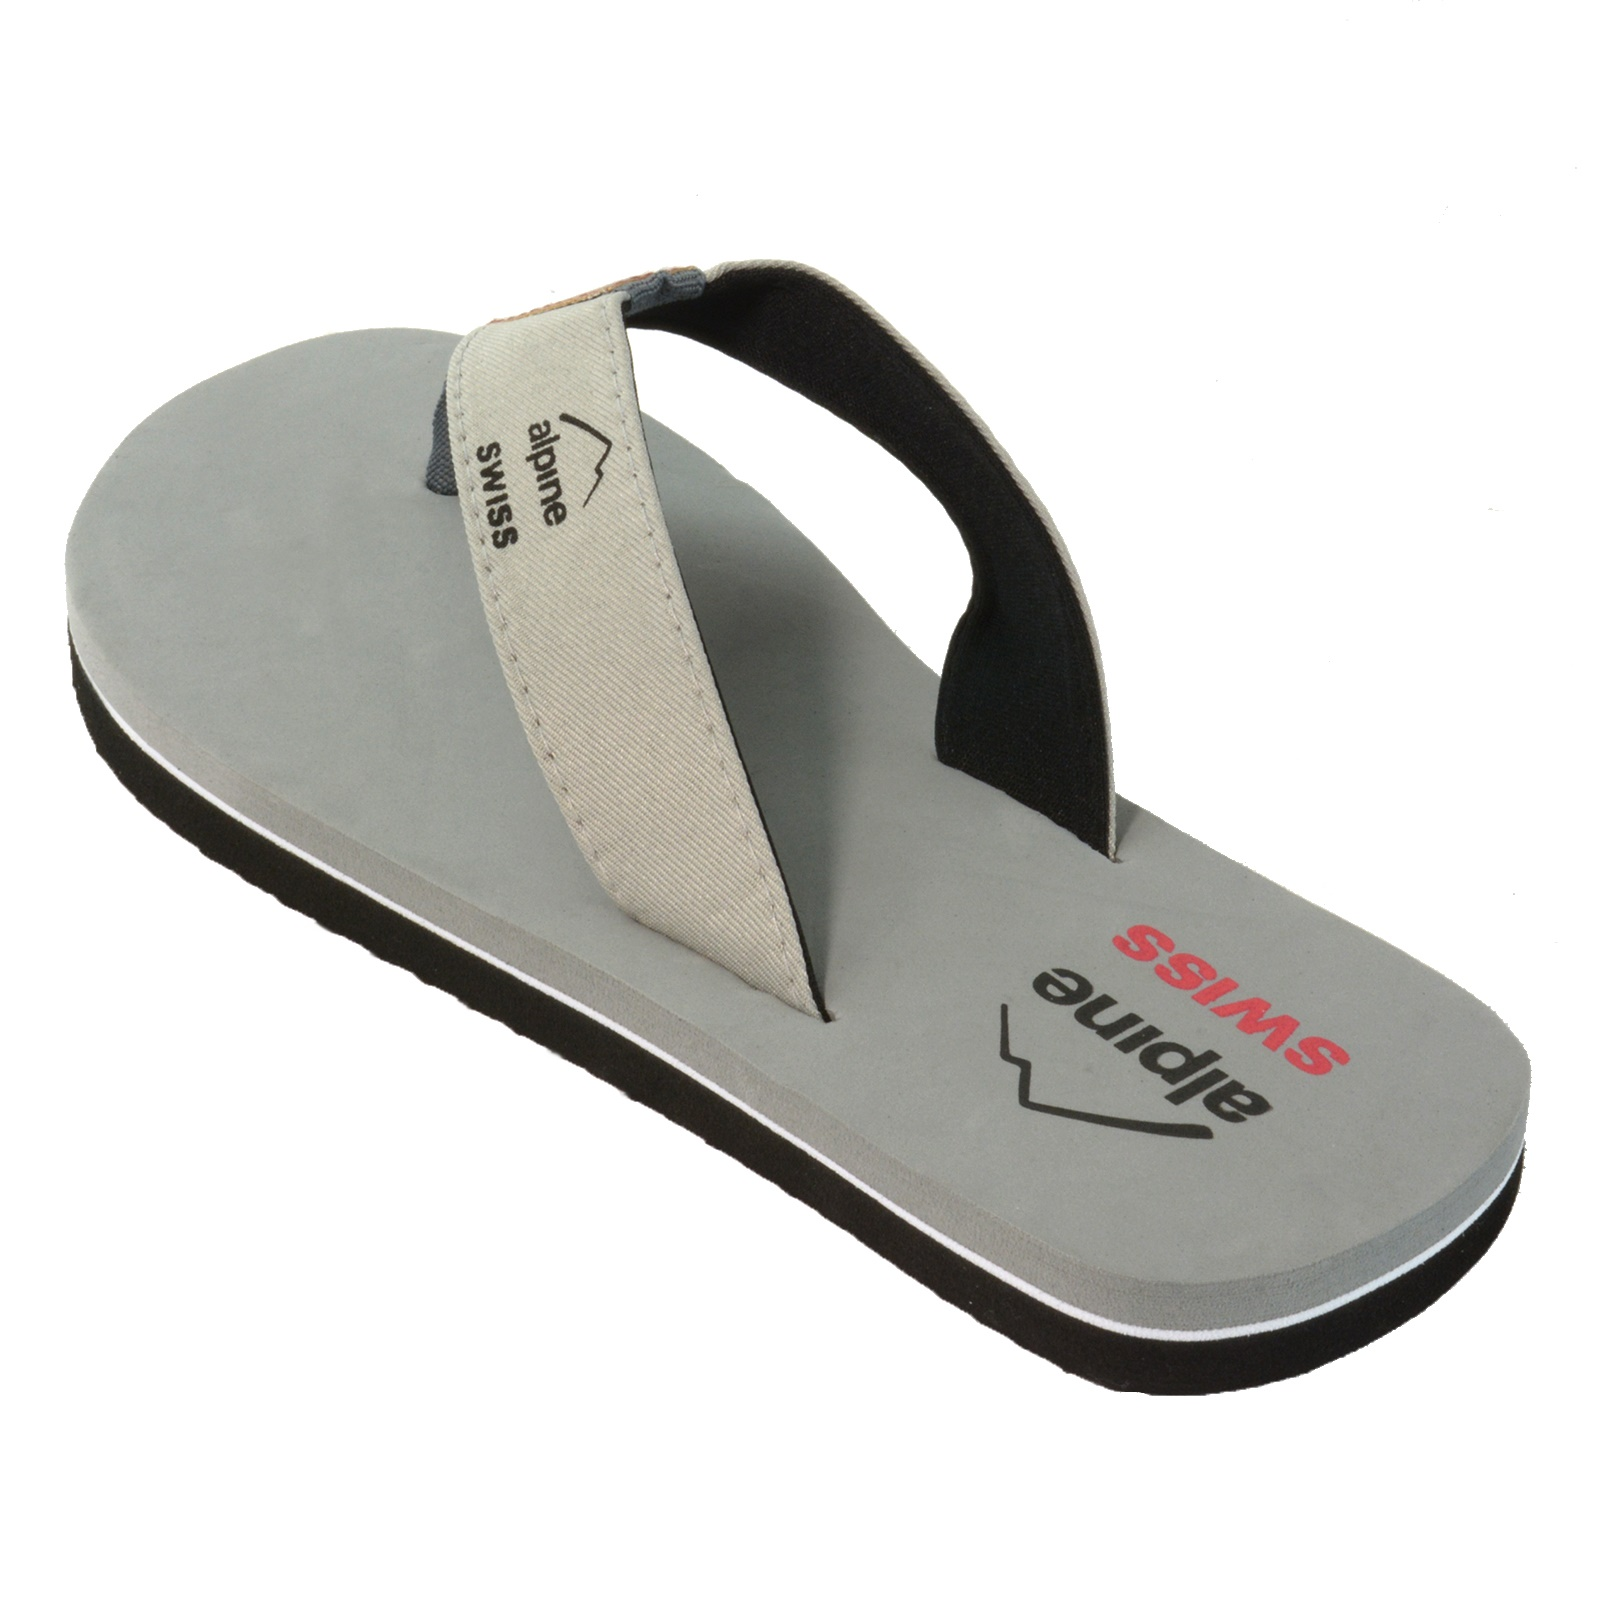 Alpine-Swiss-Mens-Flip-Flops-Beach-Sandals-Lightweight-EVA-Sole-Comfort-Thongs thumbnail 45